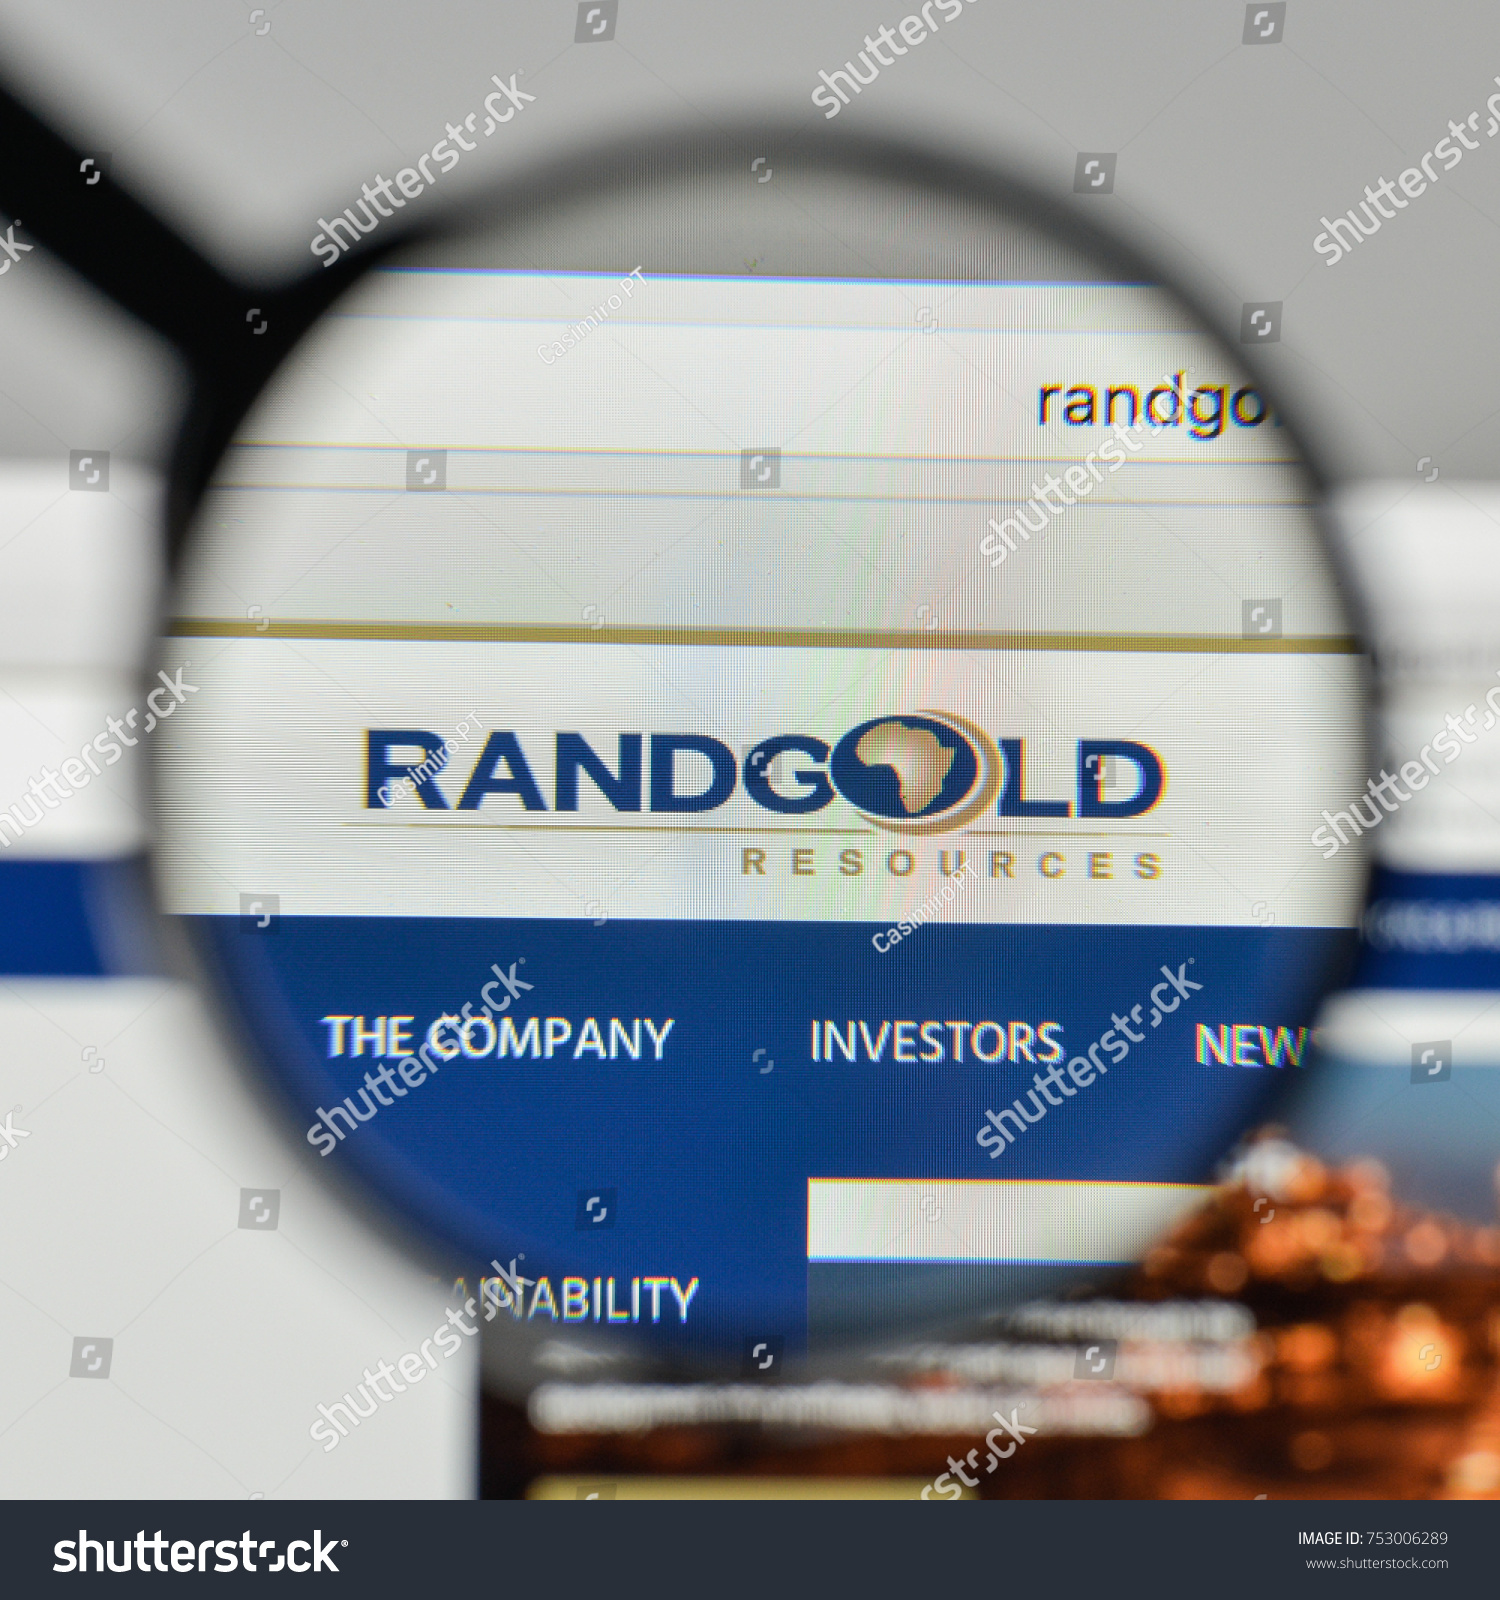 Milan italy november 1 2017 randgold stock photo 753006289 milan italy november 1 2017 randgold resources logo on the website homepage buycottarizona